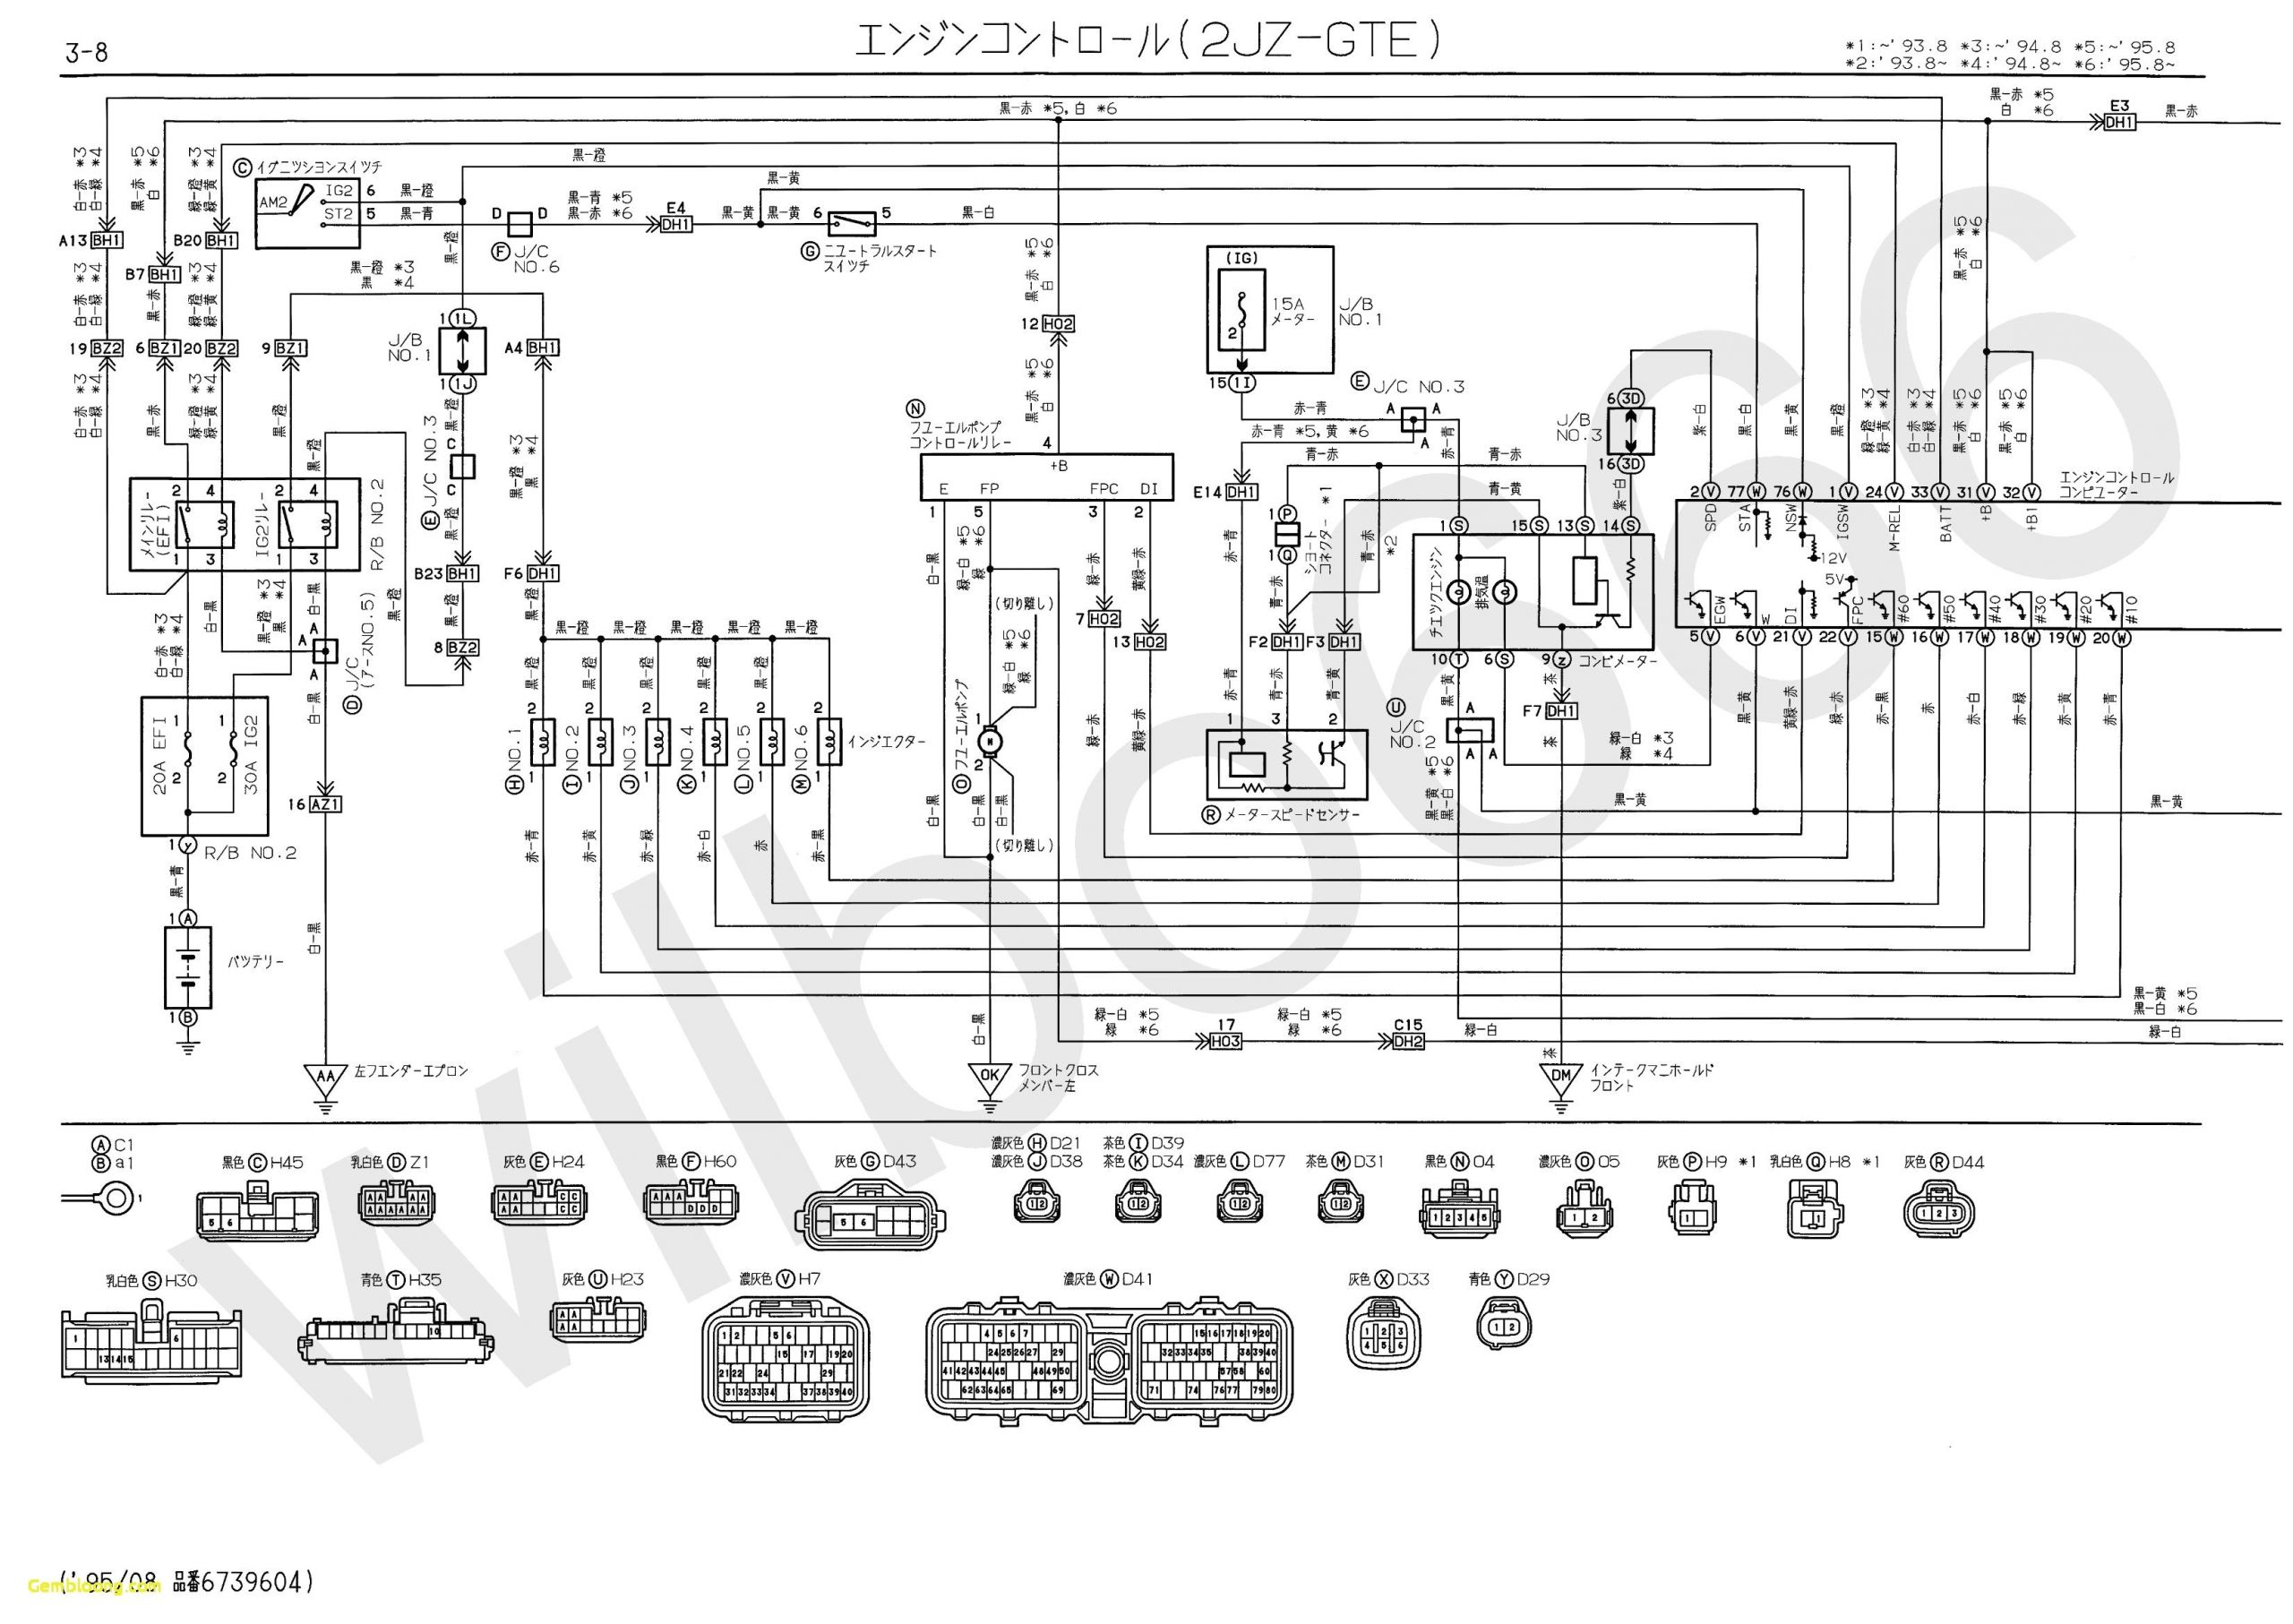 E46 Wiring Harness Labeled. bmw e46 wiring diagram. 2002 bmw 325i parts  diagram automotive parts diagram images. unique bmw e46 engine wiring  harness diagram diagram. e46 ecu diagram wiring diagram database. bmw2002-acura-tl-radio.info